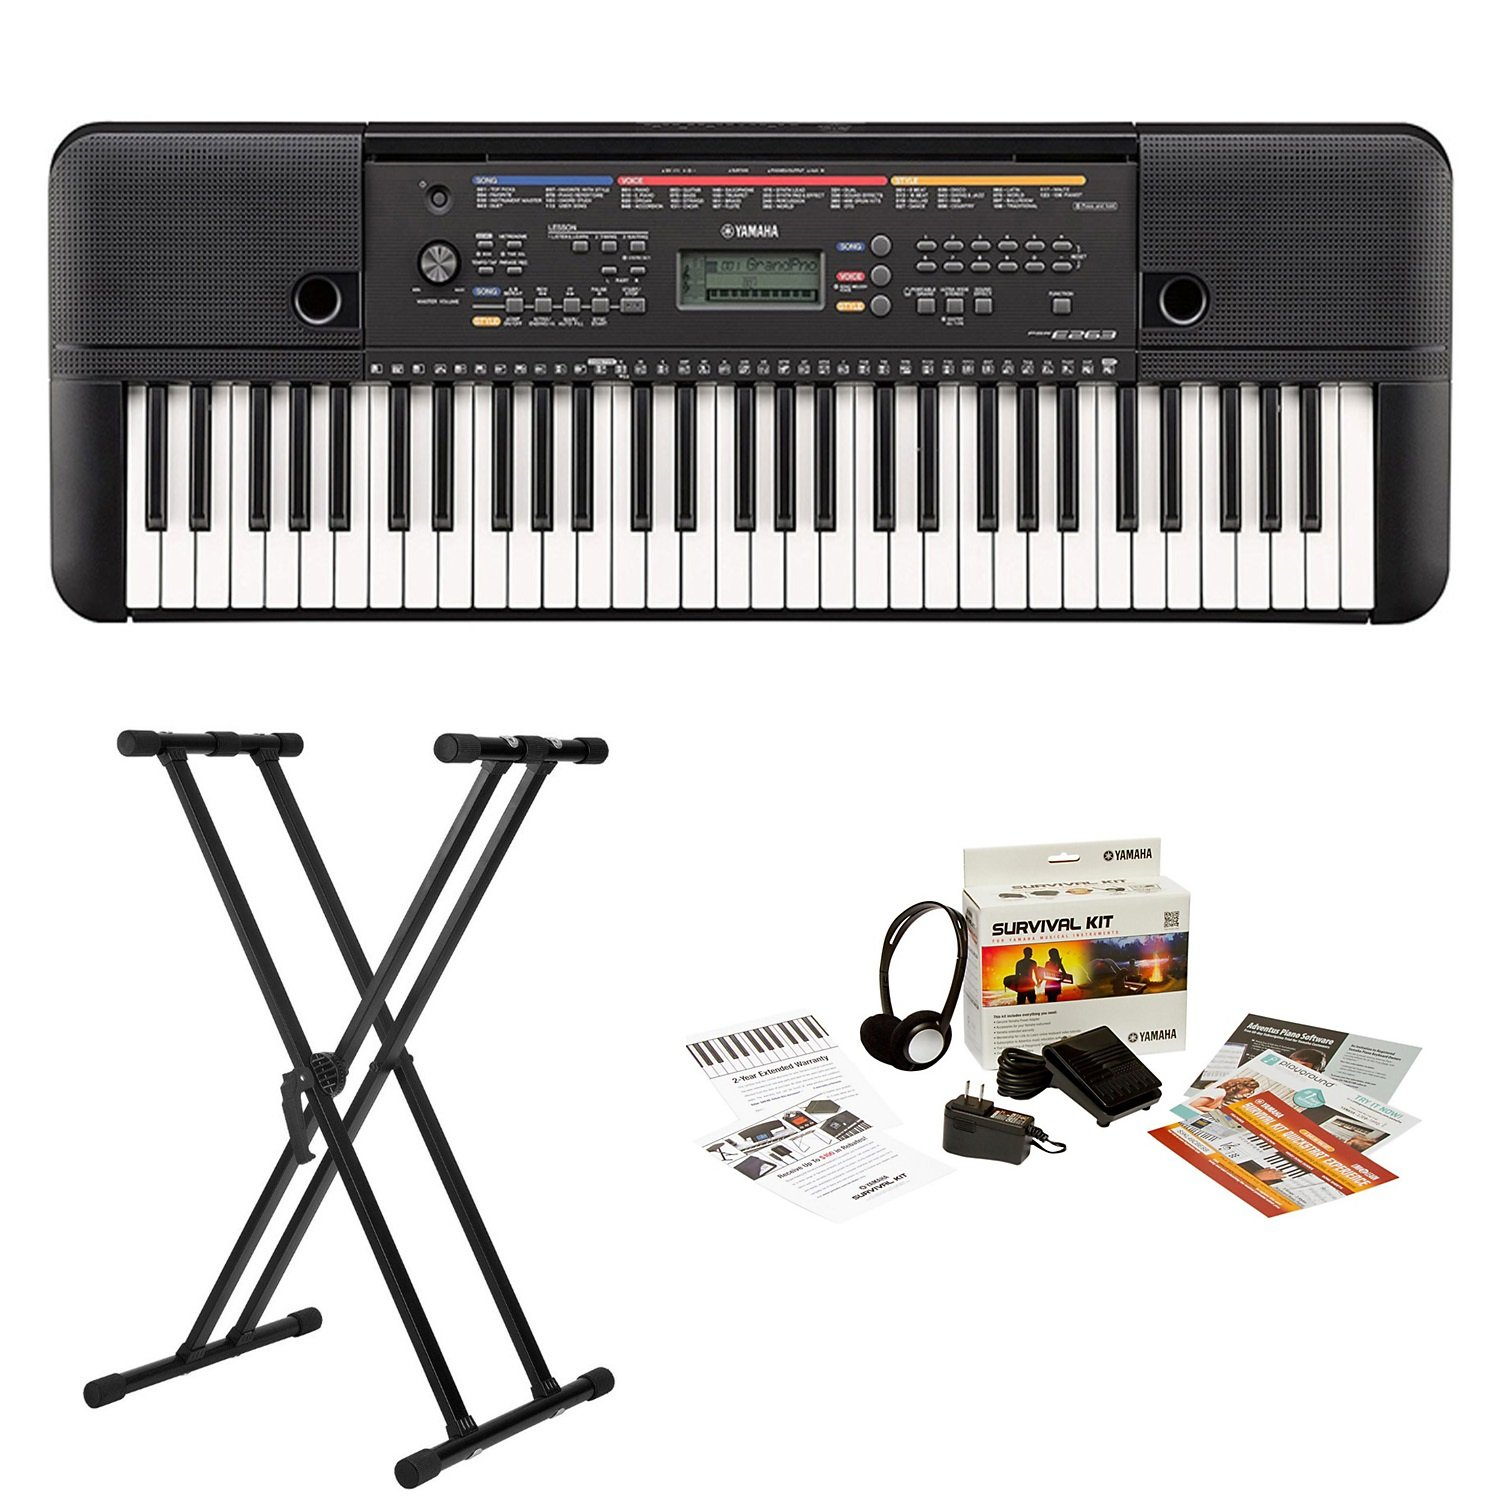 Yamaha PSRE263 61-Key Portable Keyboard with Knox Stand and Survivalkit (Includes Power Supply and 2 Year Warranty)